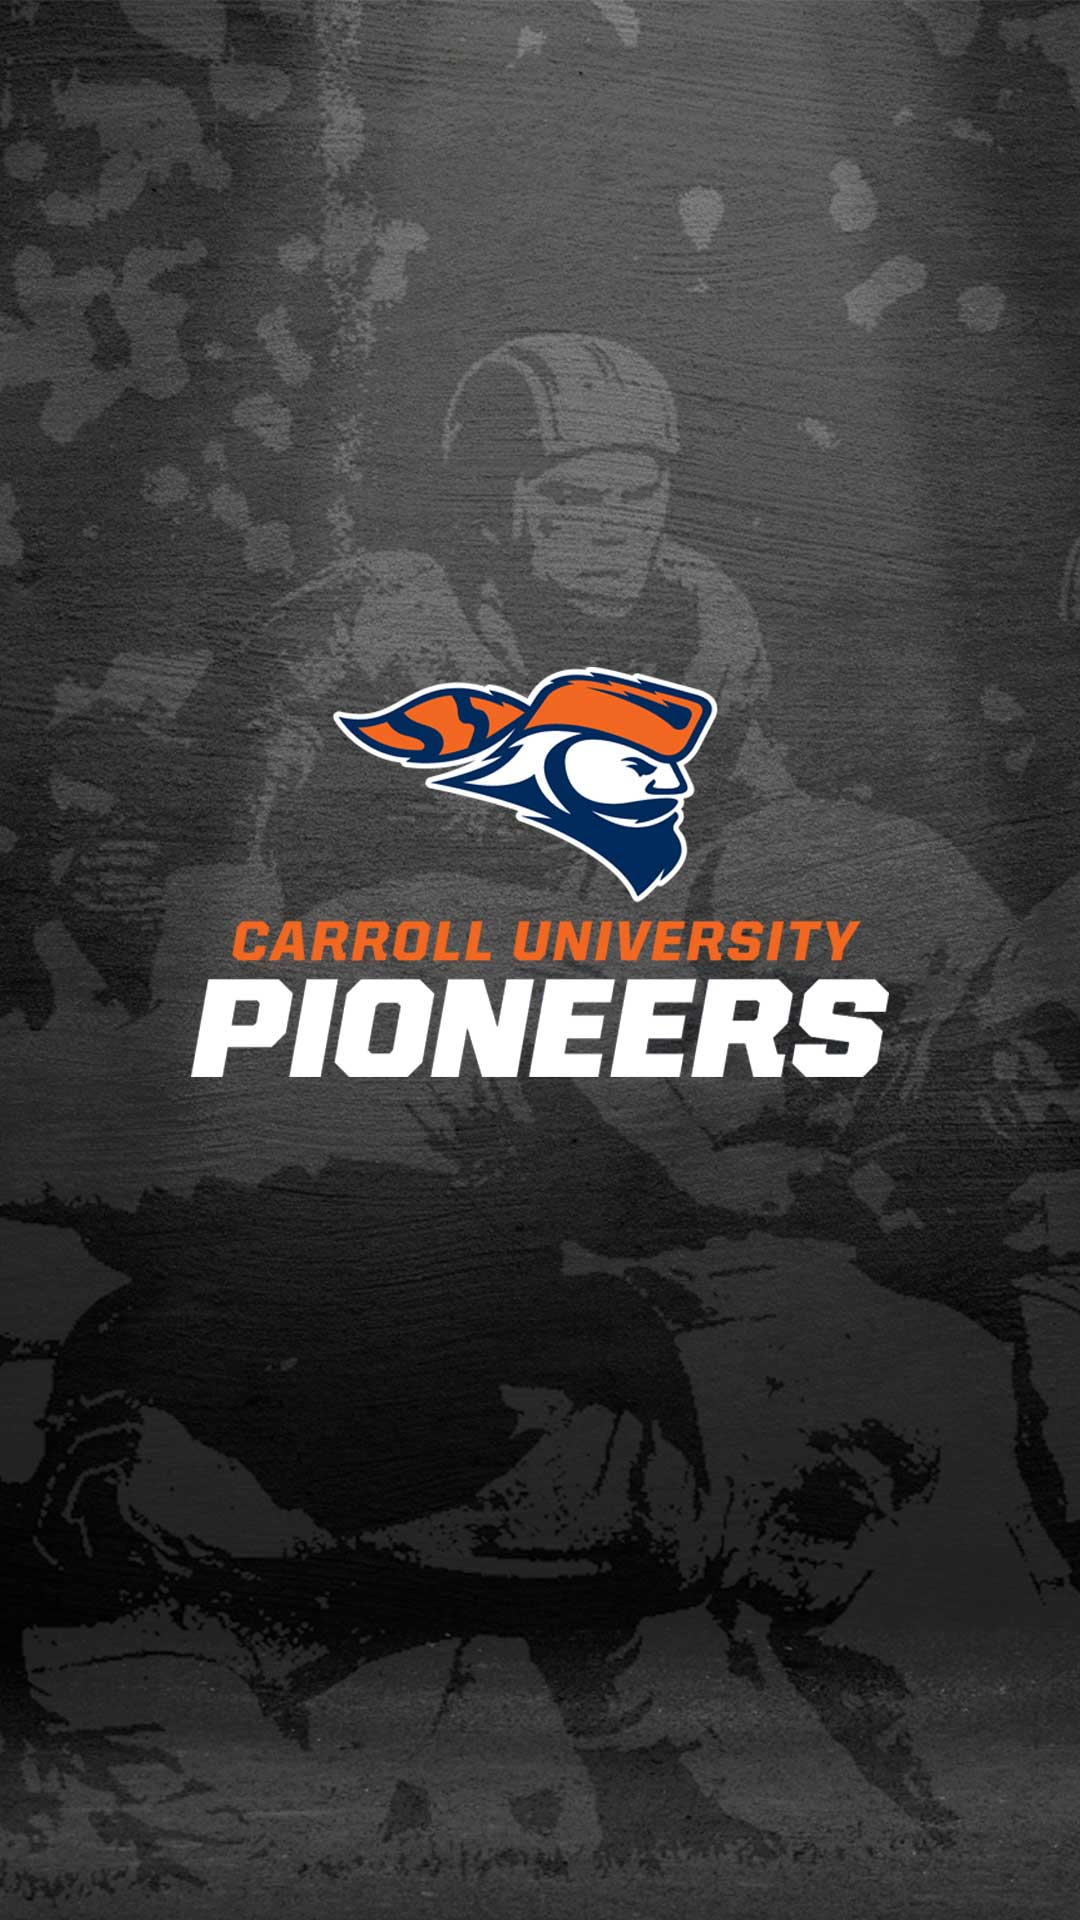 carroll university pioneers logo over throwback football background